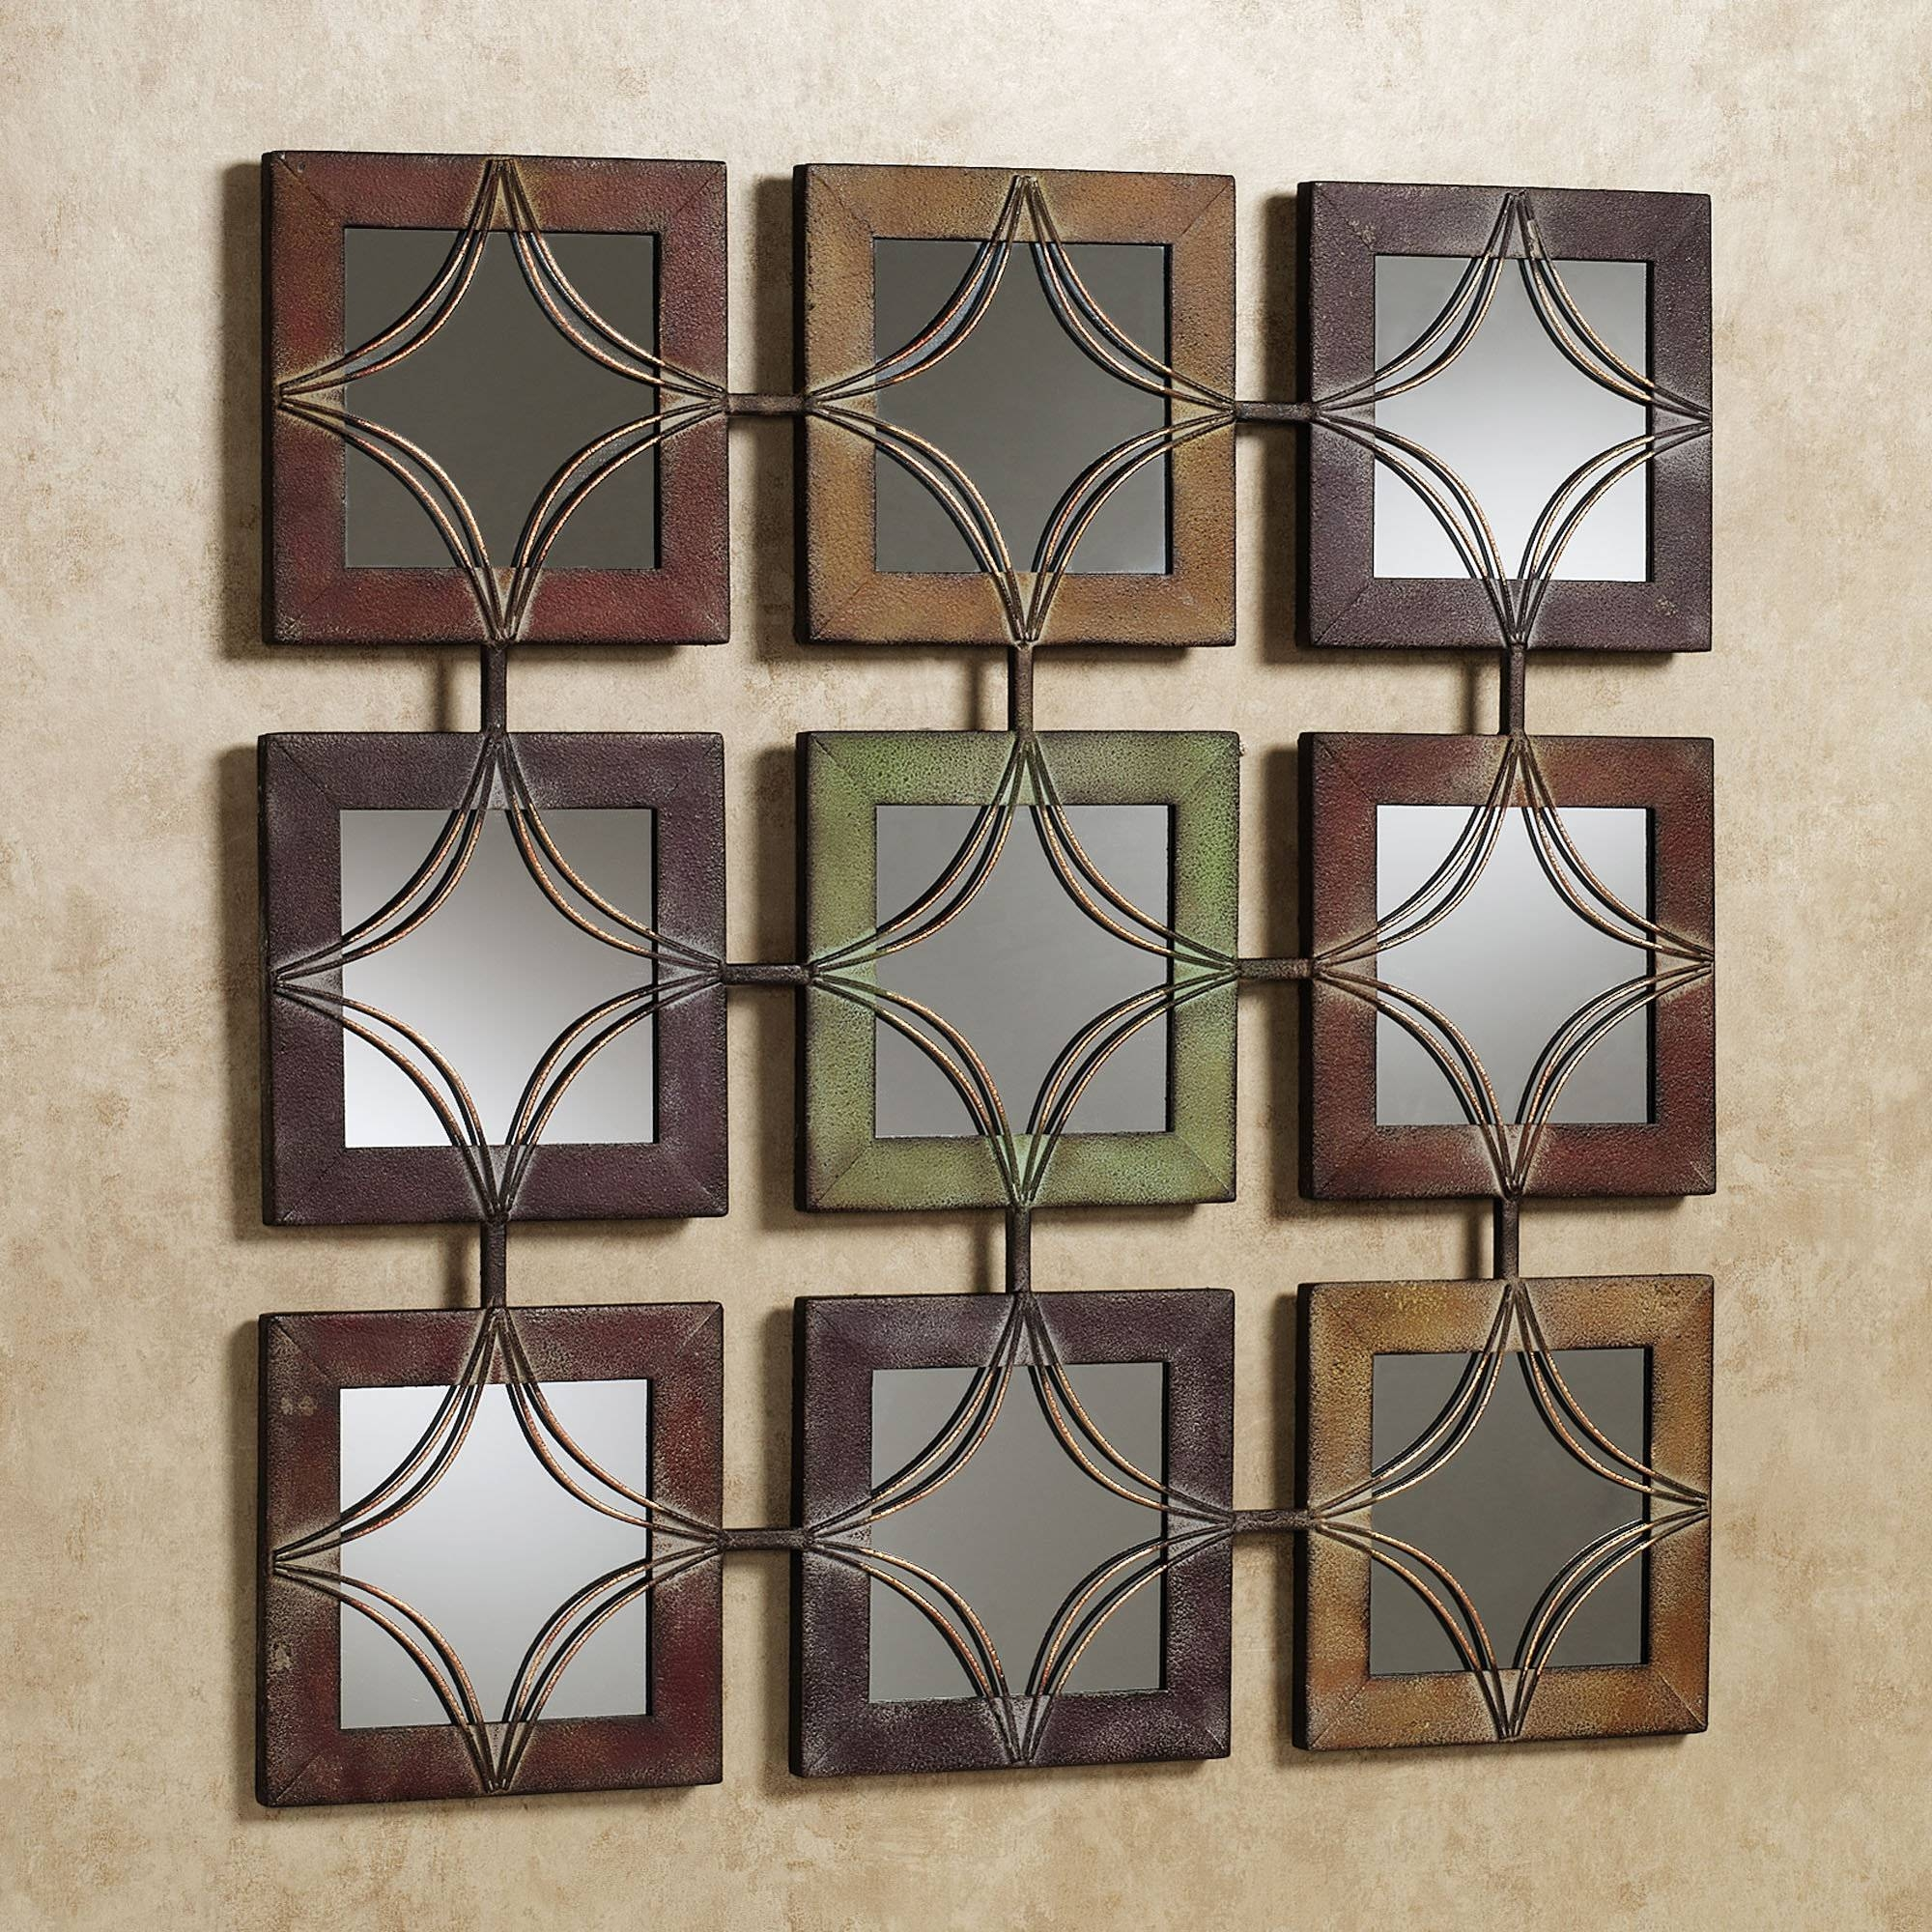 Wall Art Decor: Domini Metal Mirrored Wall Art Textured Square Pertaining To Most Up To Date Square Metal Wall Art (View 5 of 20)